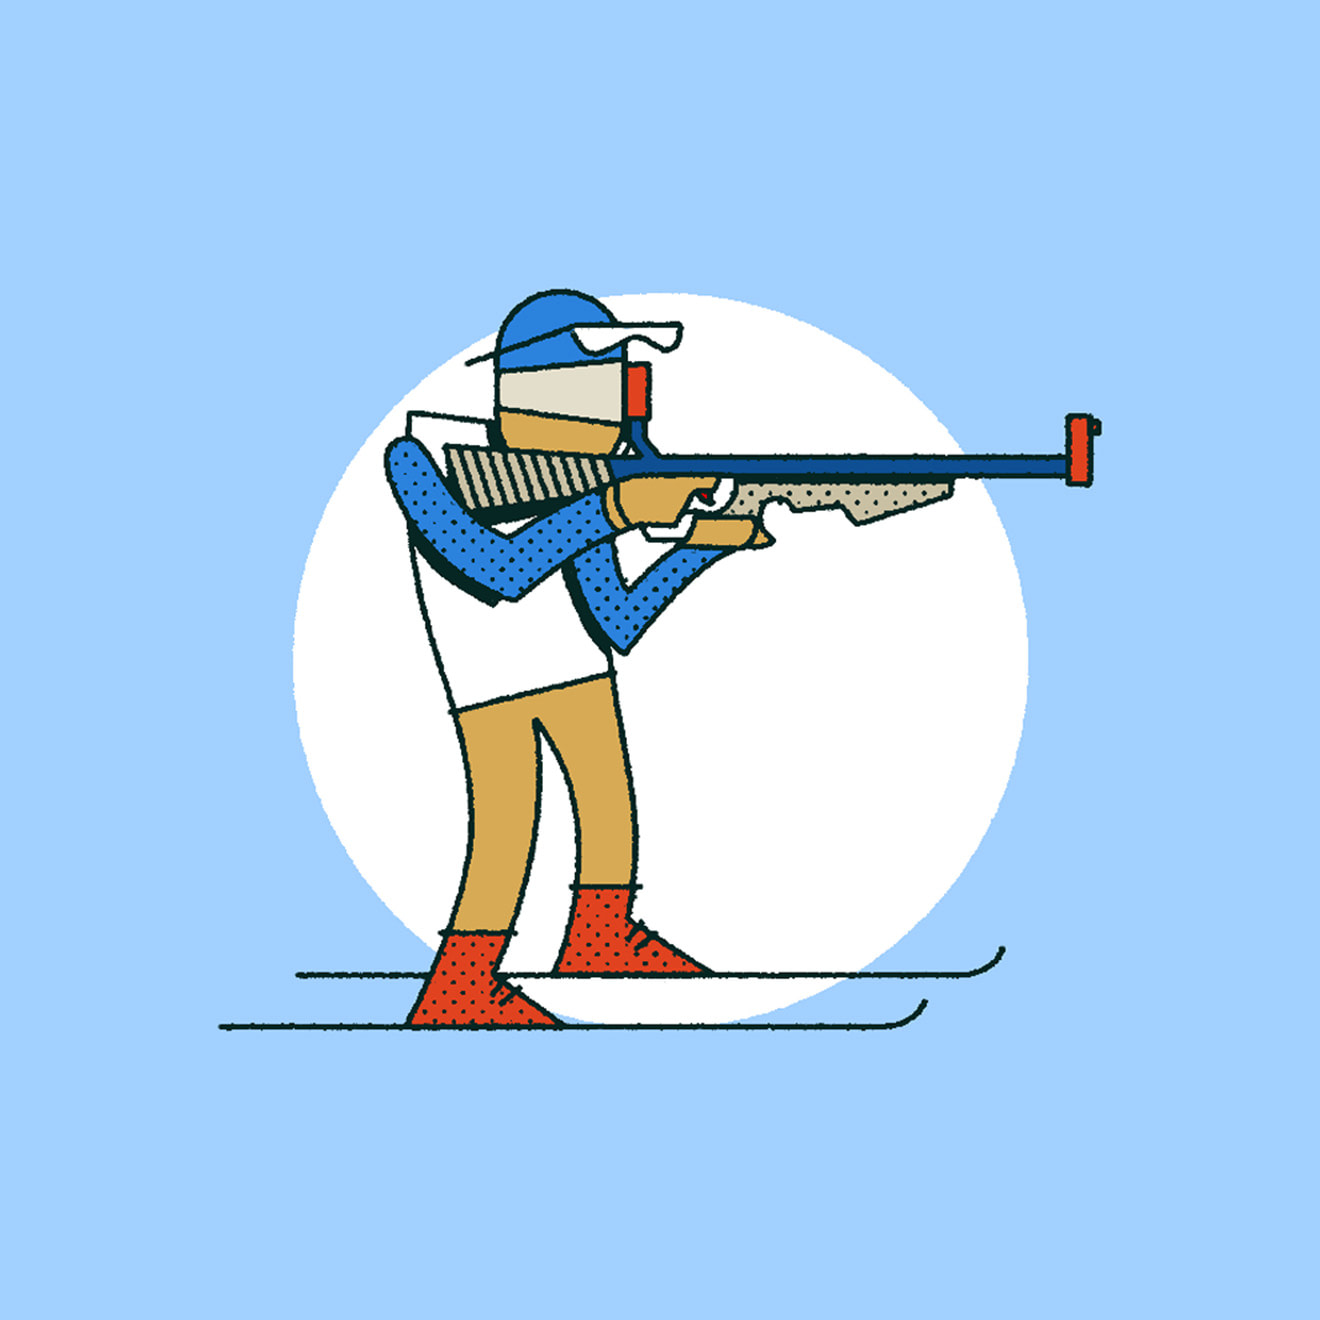 Blue, Red, White & Beige illustration of a person sport shooting